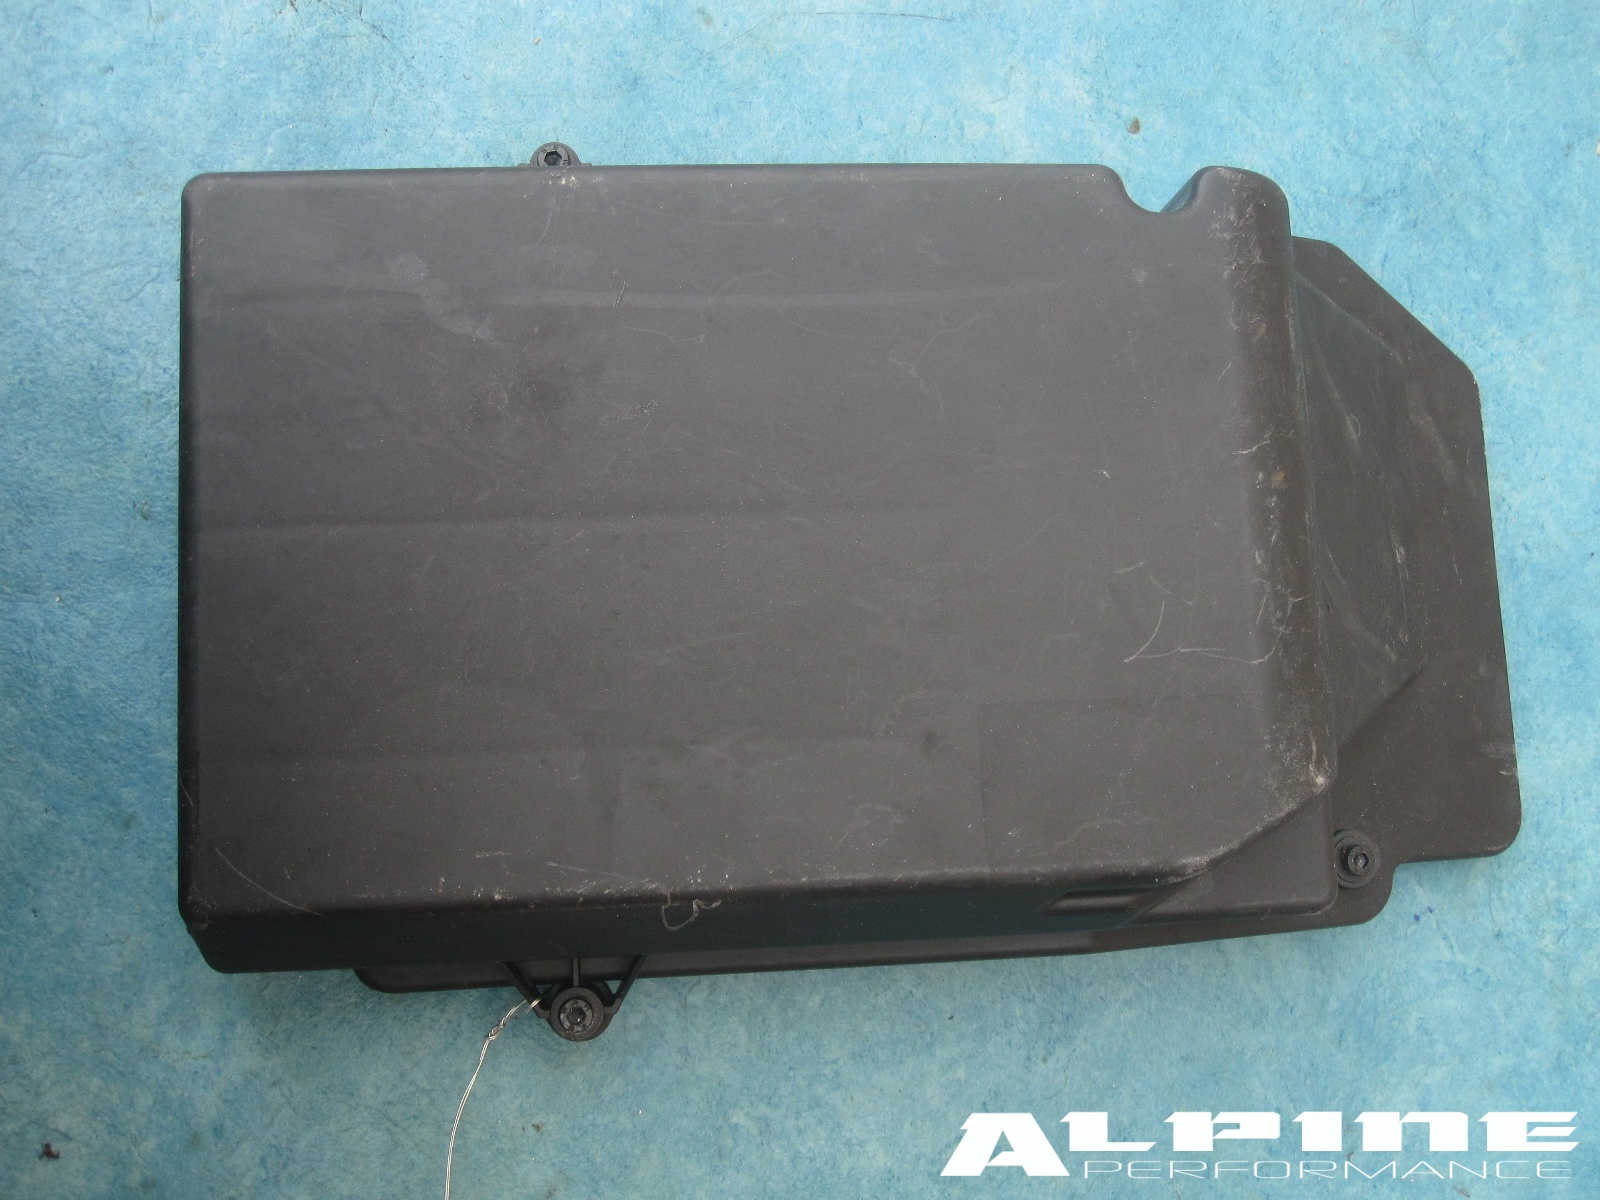 hight resolution of mercedes benz s550 cl550 left case housing fuse box cover w221 w216 40 00 1 in stock